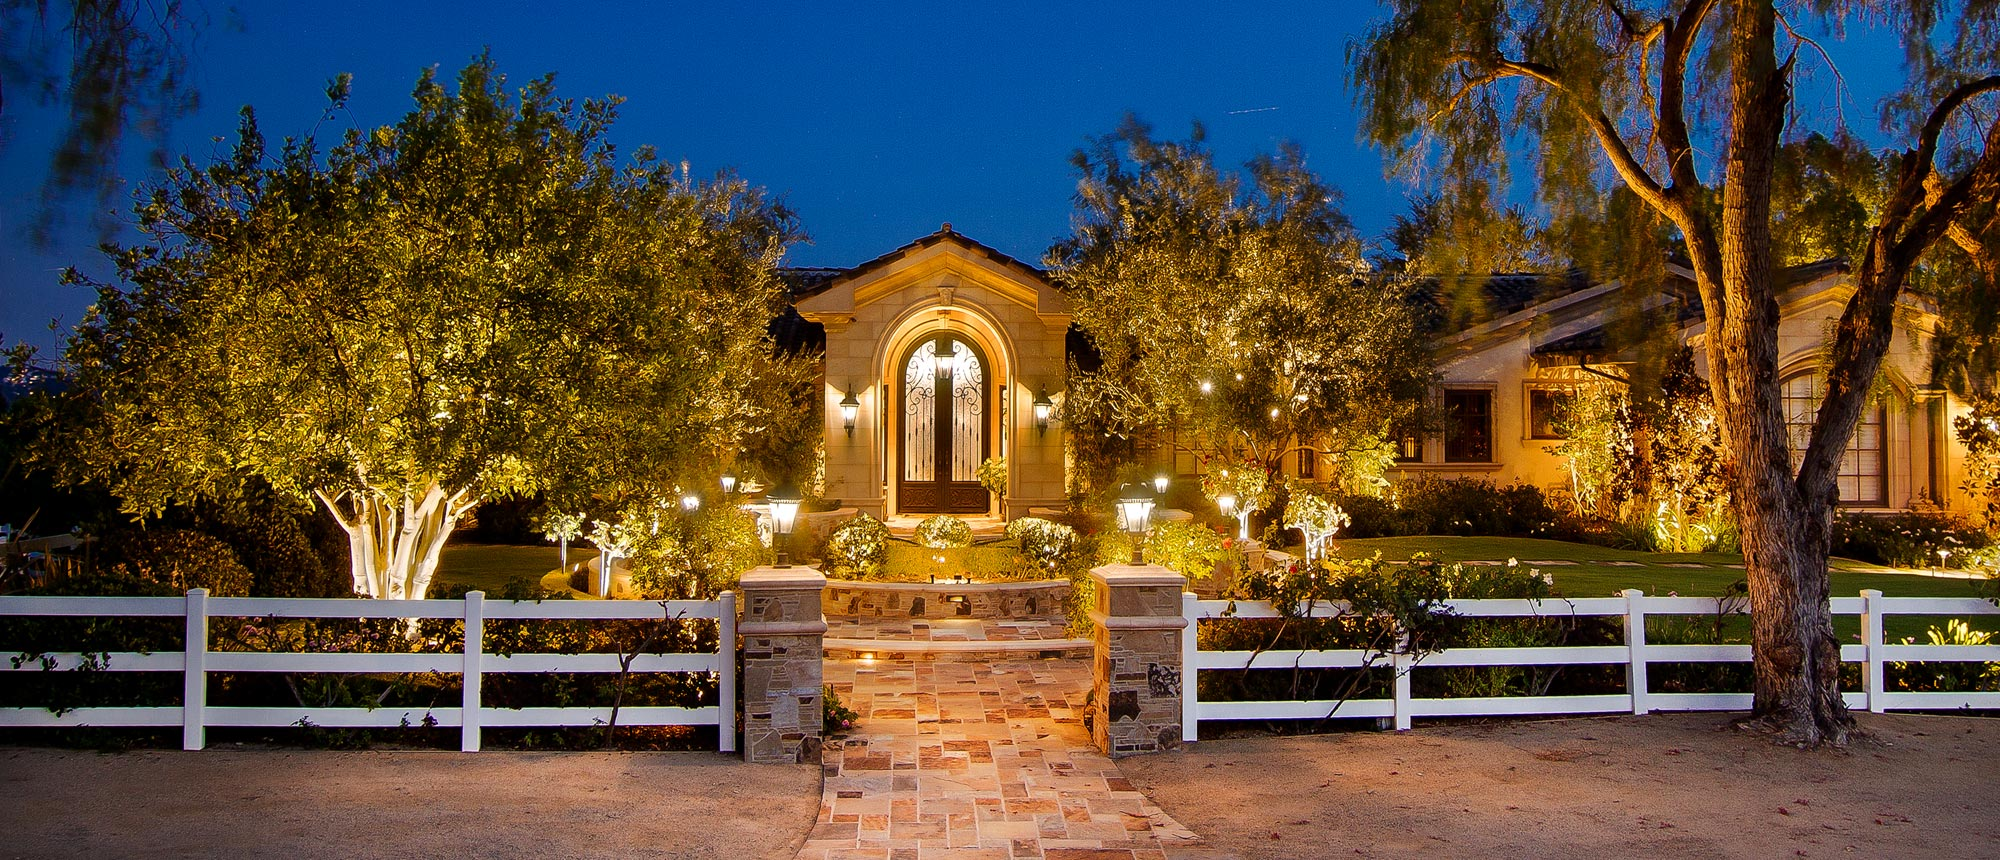 Landscape Lighting - Security